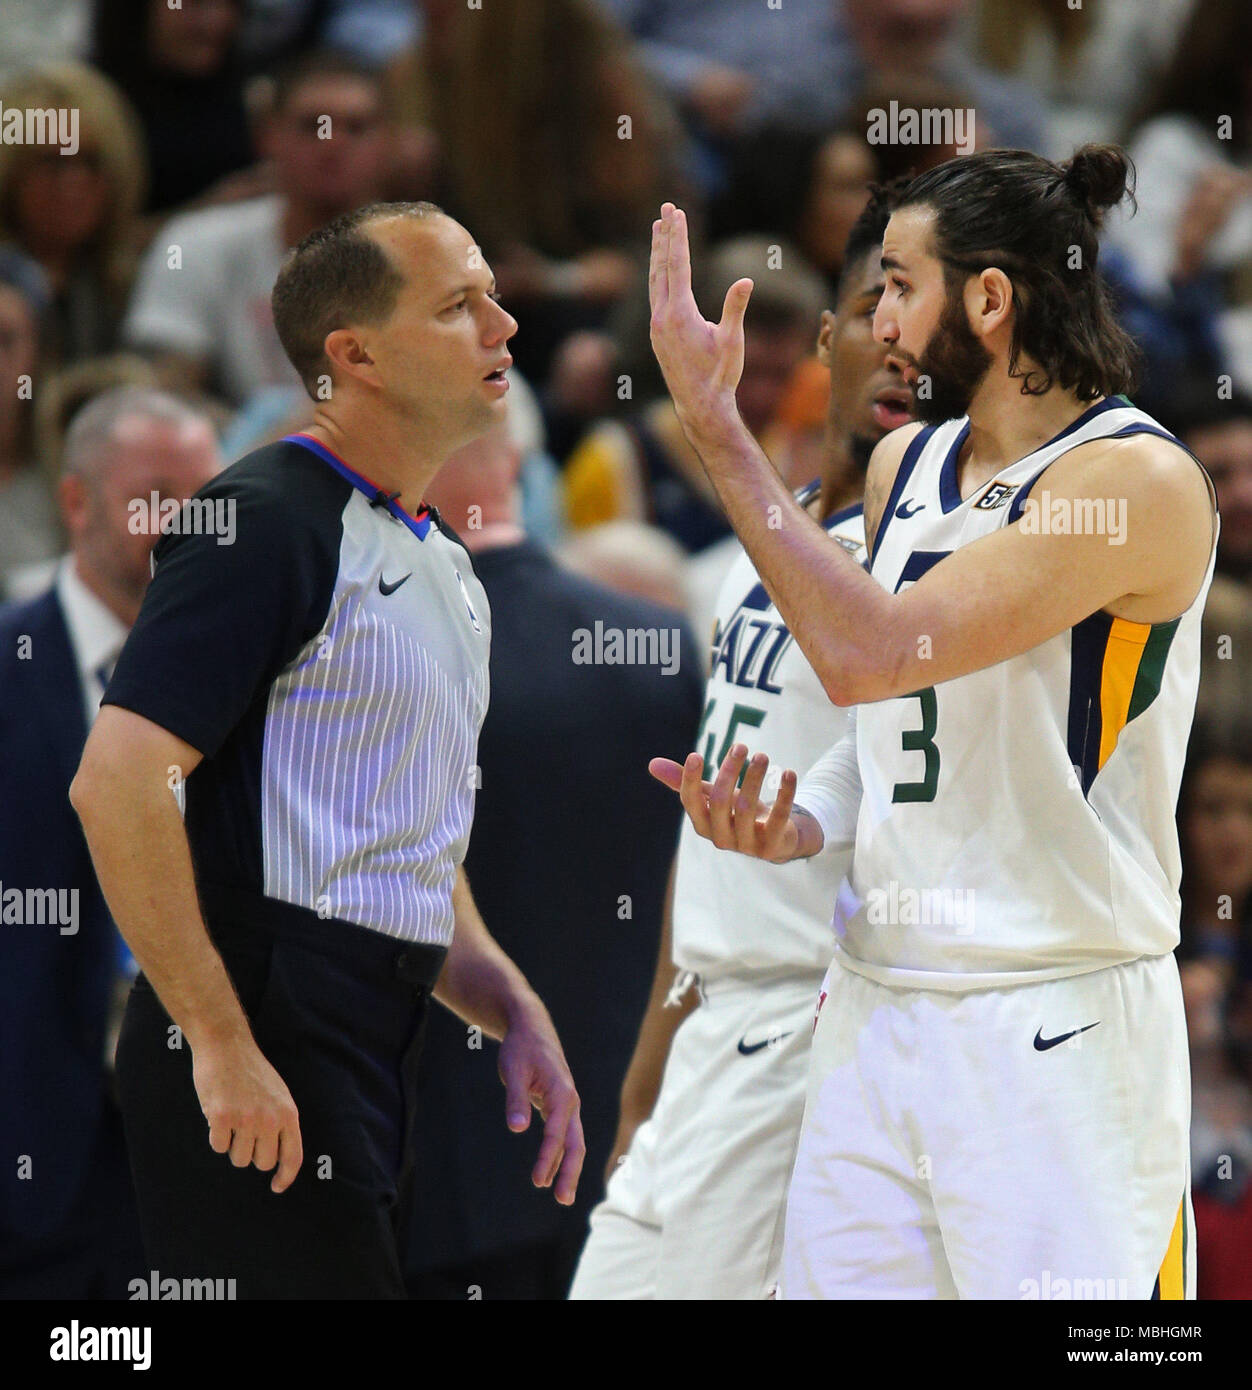 Salt Lake City, USA. 10th Apr, 2018. Utah Jazz guard Ricky Rubio (3) argues a call with referee John Goble (30) during their NBA game at the Energy Solutions Arena, in Salt Lake City, Utah, USA, 10 April 2018. Credit: GEORGE FREY/EFE/Alamy Live News - Stock Image